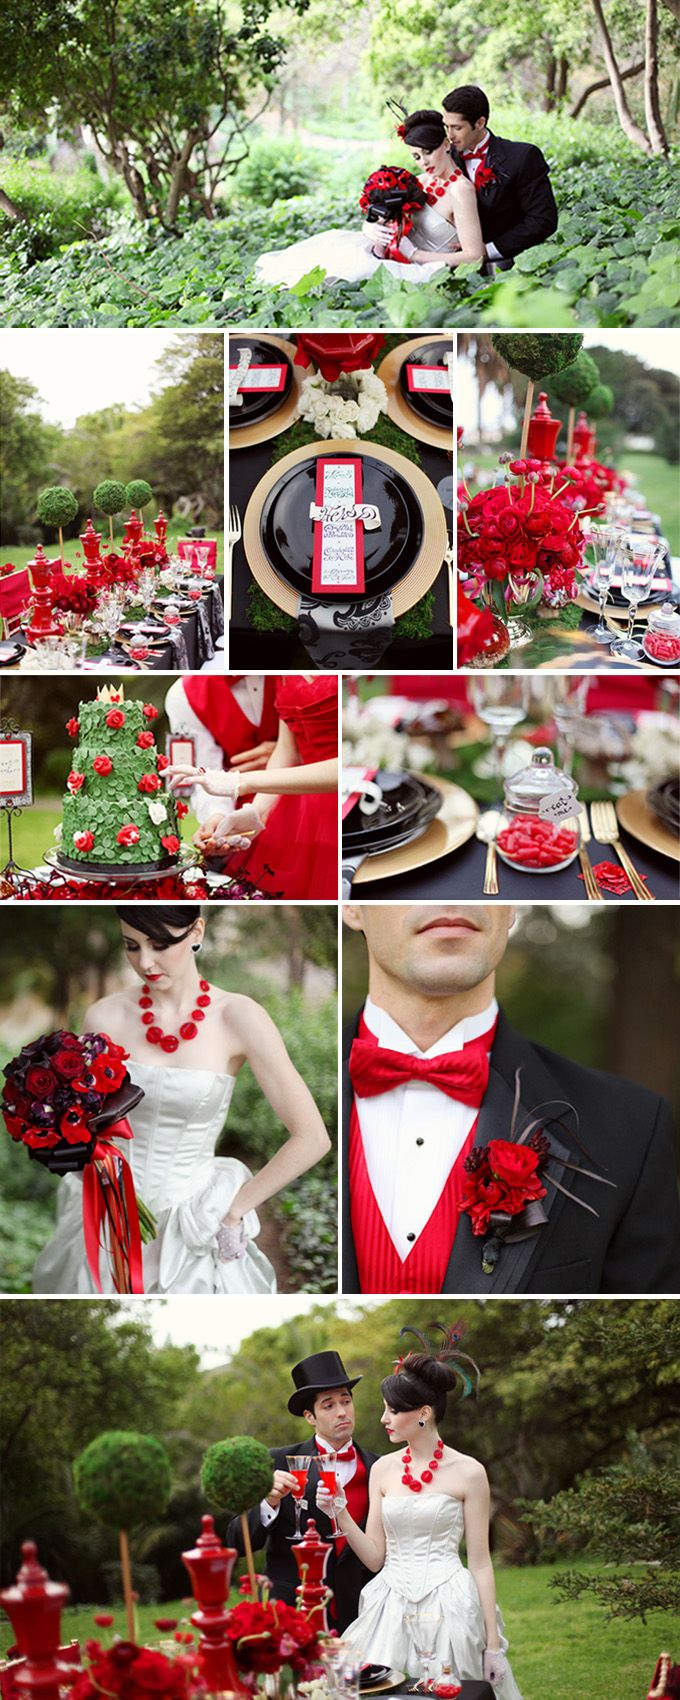 This Alice in Wonderland wedding inspiration board is heavily influenced by the Queen of Hearts, noted from the many uses of red and black colors